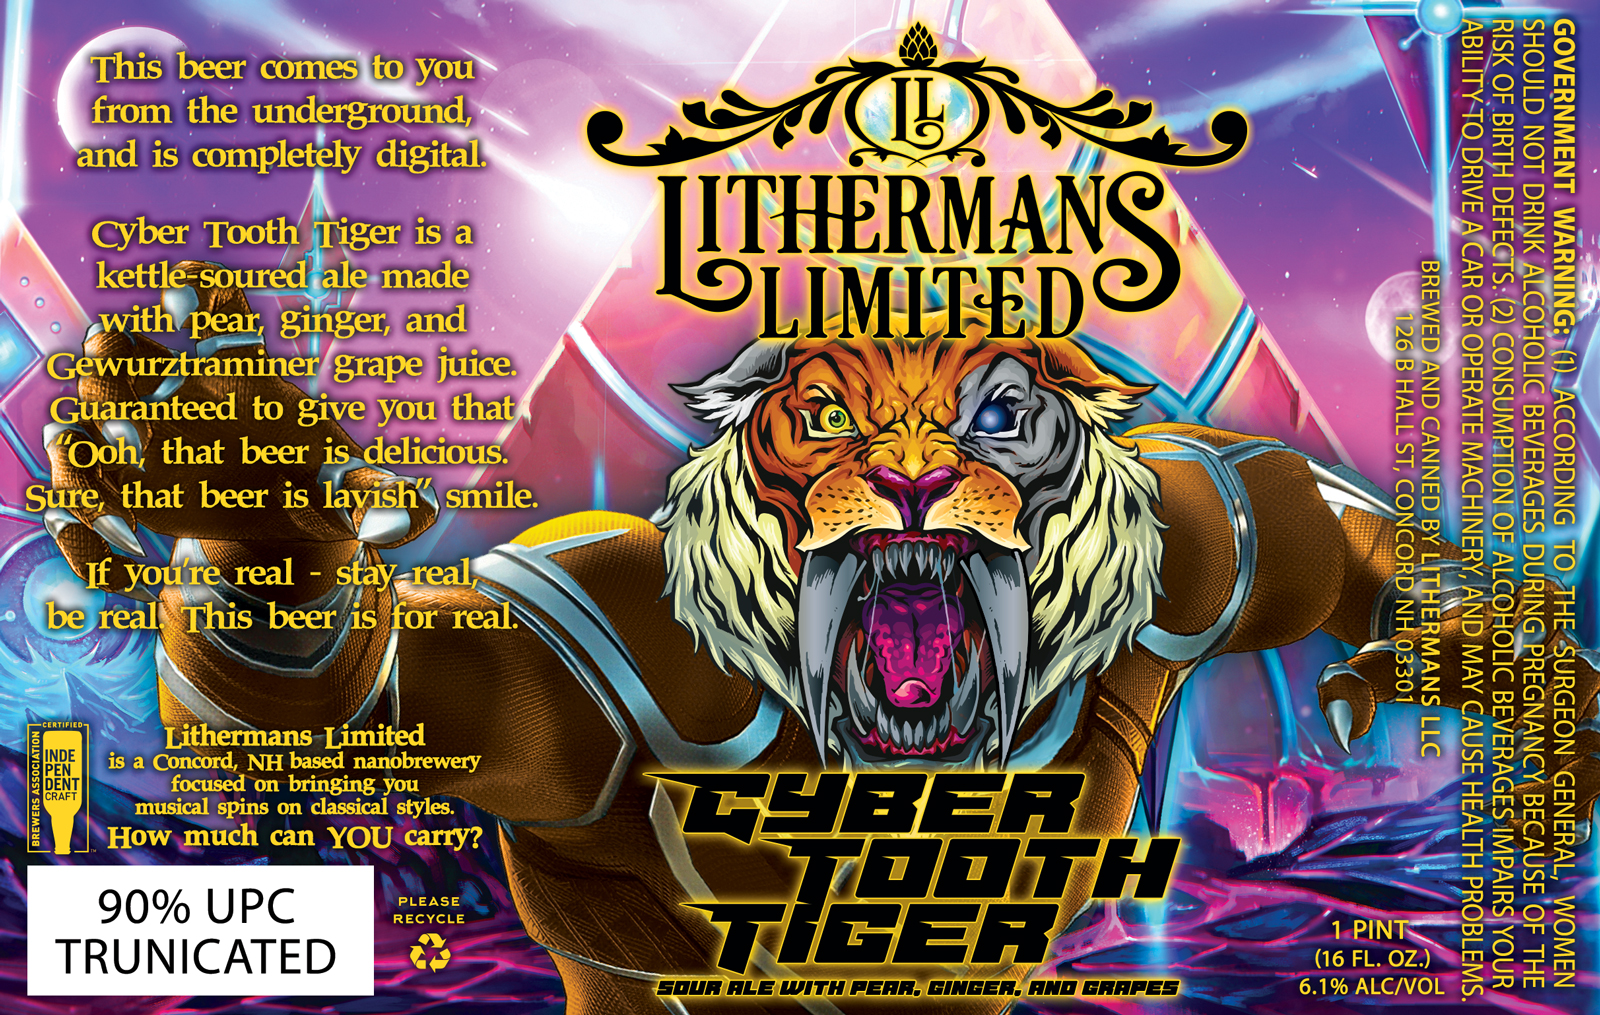 LL-CAN-LABEL-CYBER-TOOTH-TIGER-2021-PROOF